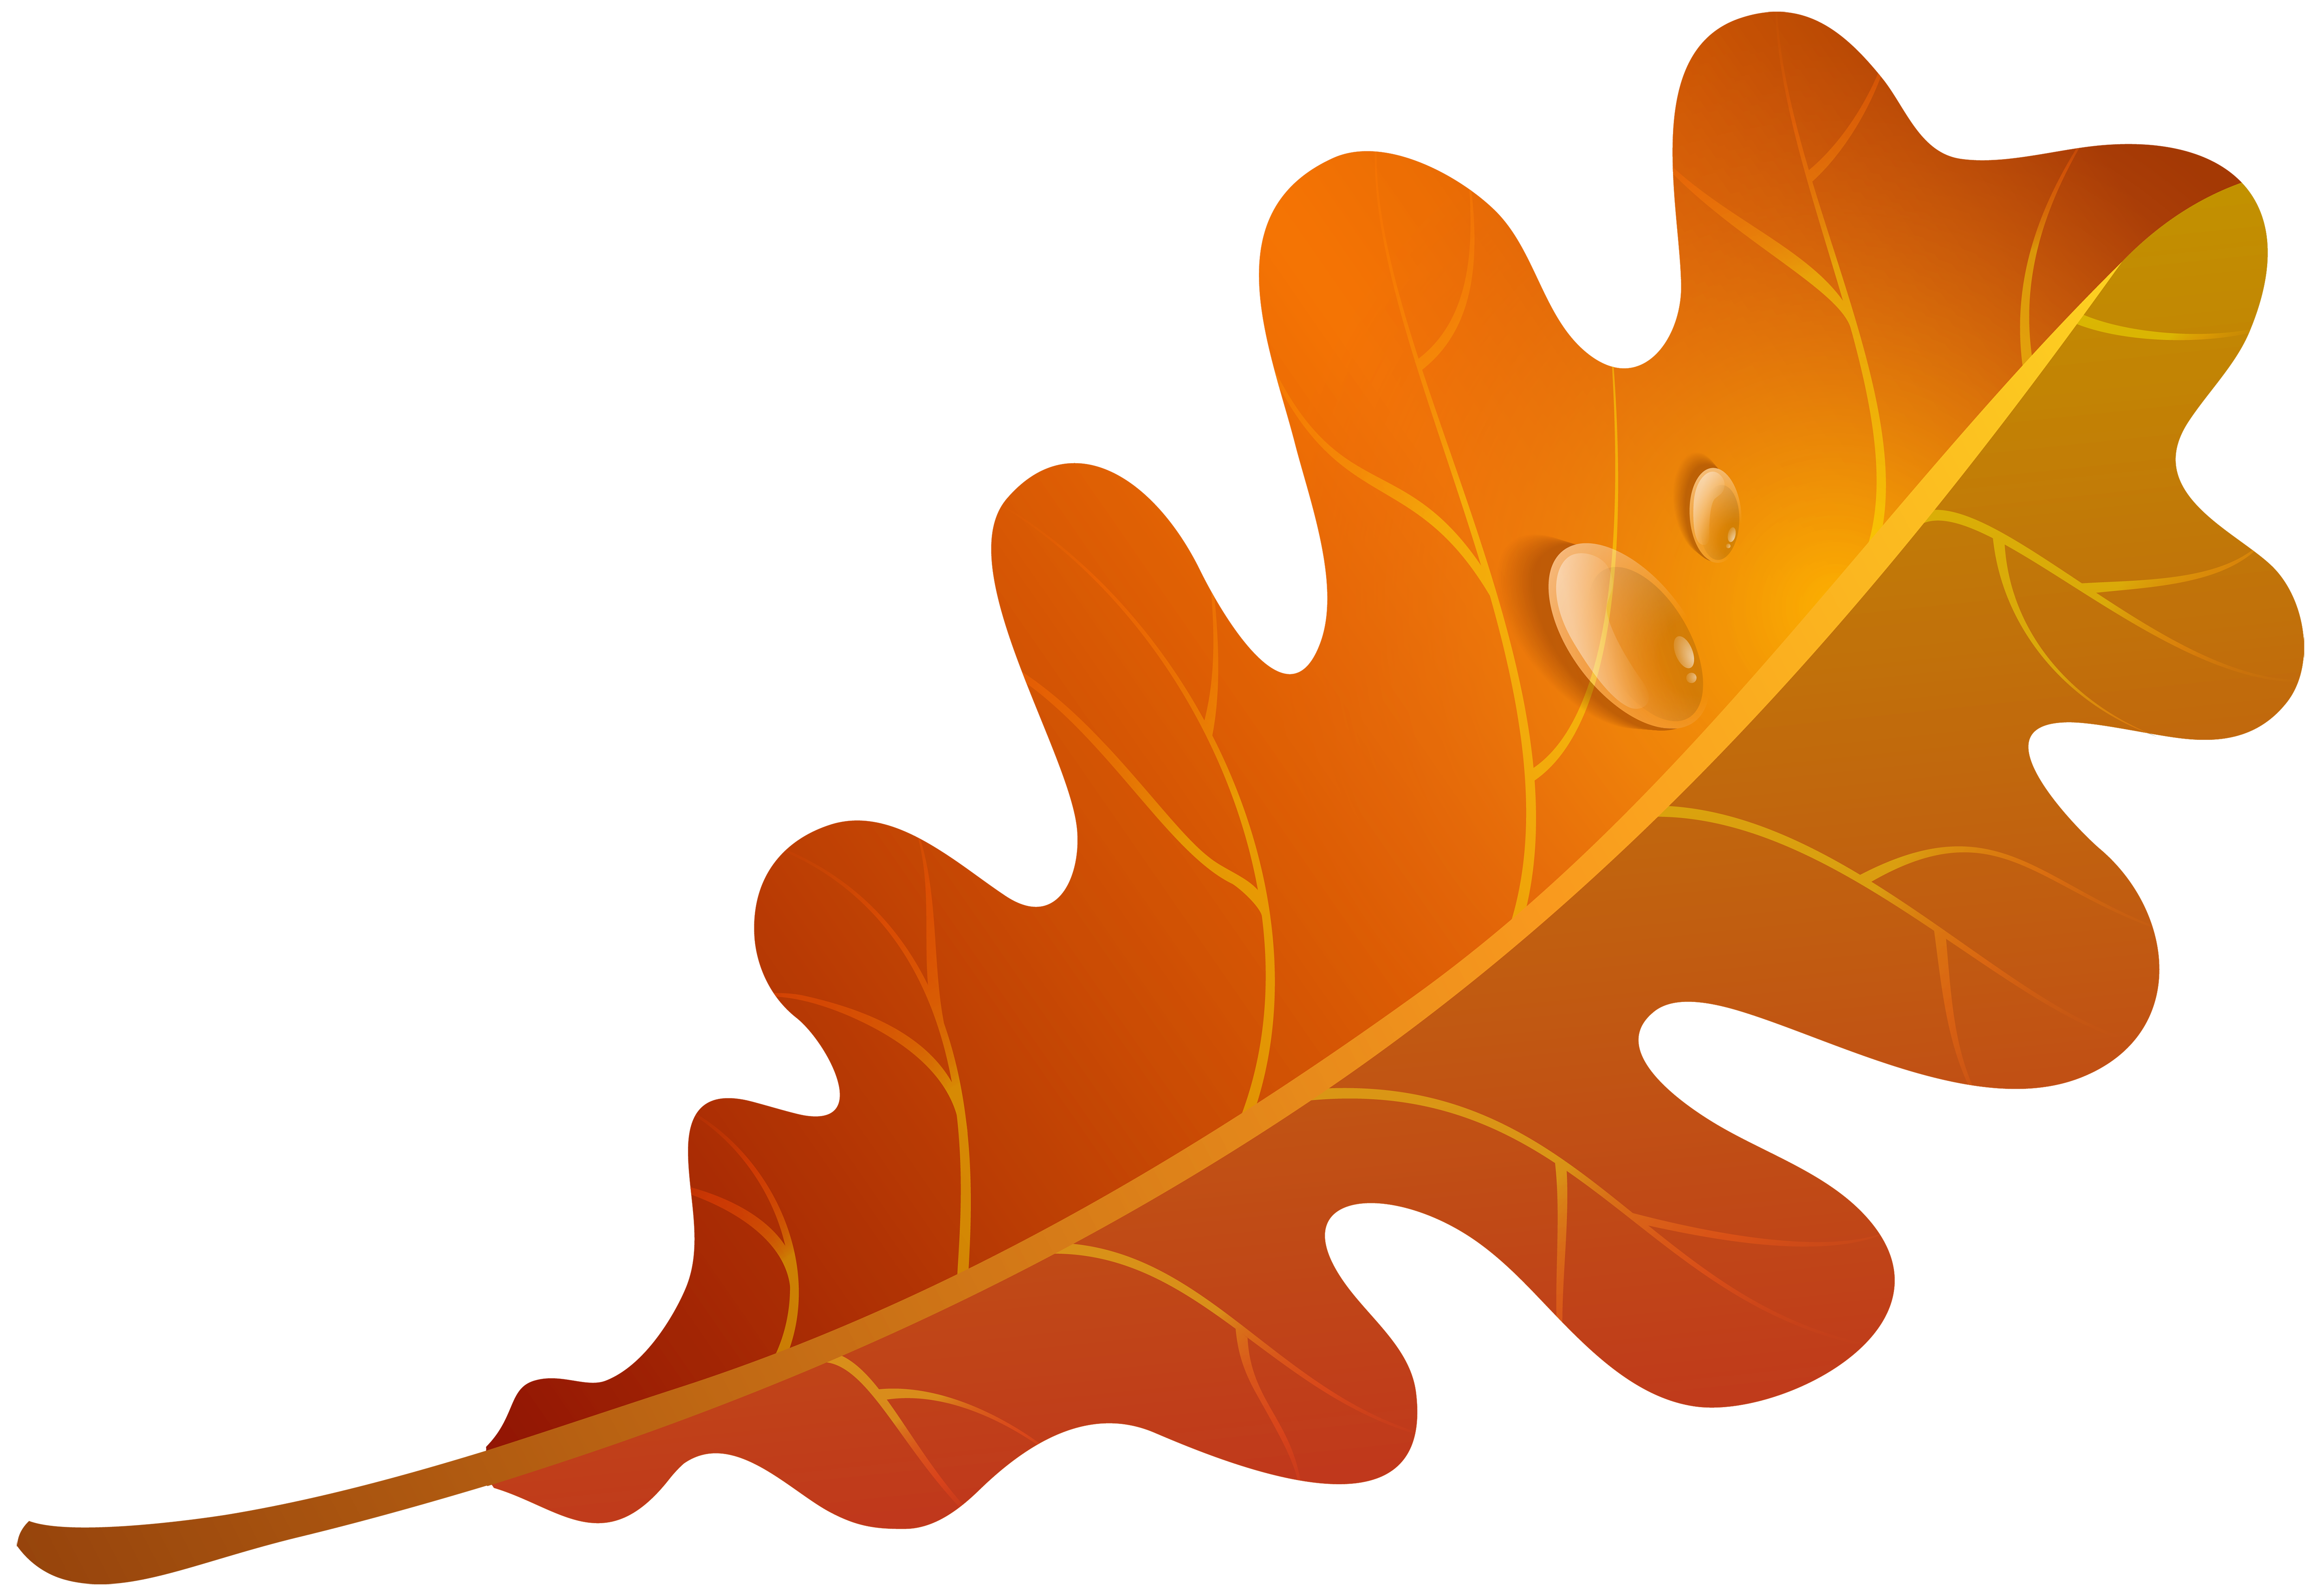 5000x3439 Fall Orange Leaf Png Clipart Imageu200b Gallery Yopriceville